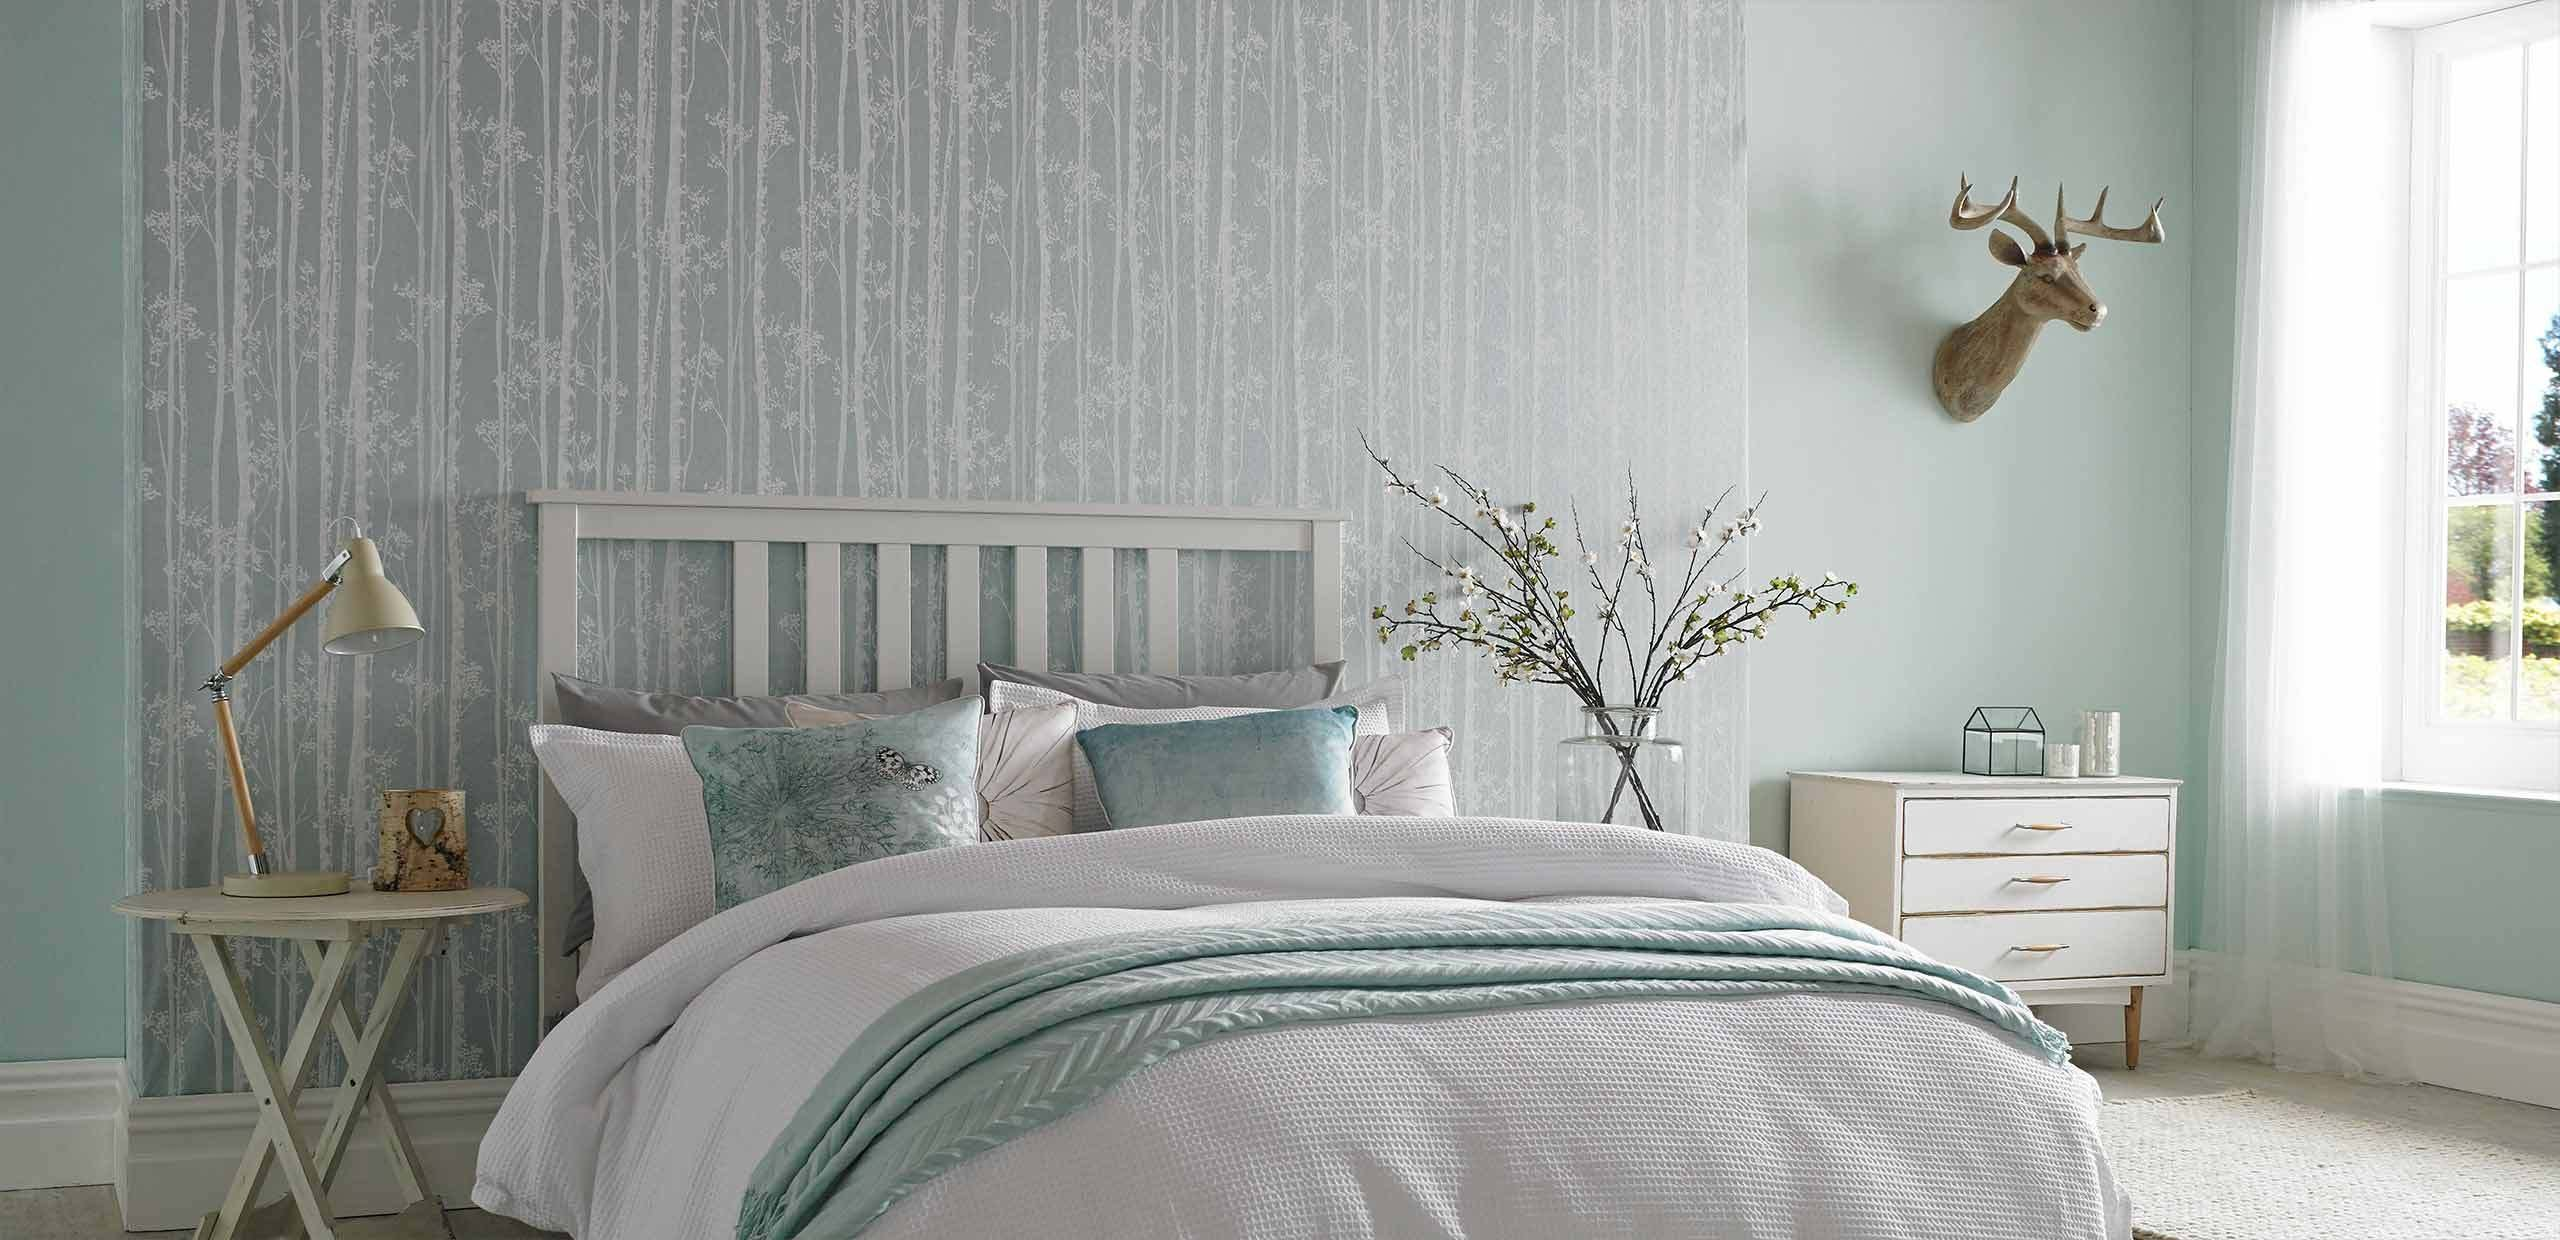 Best Bedroom Wallpaper Wall Decor Ideas For Bedrooms With Pictures